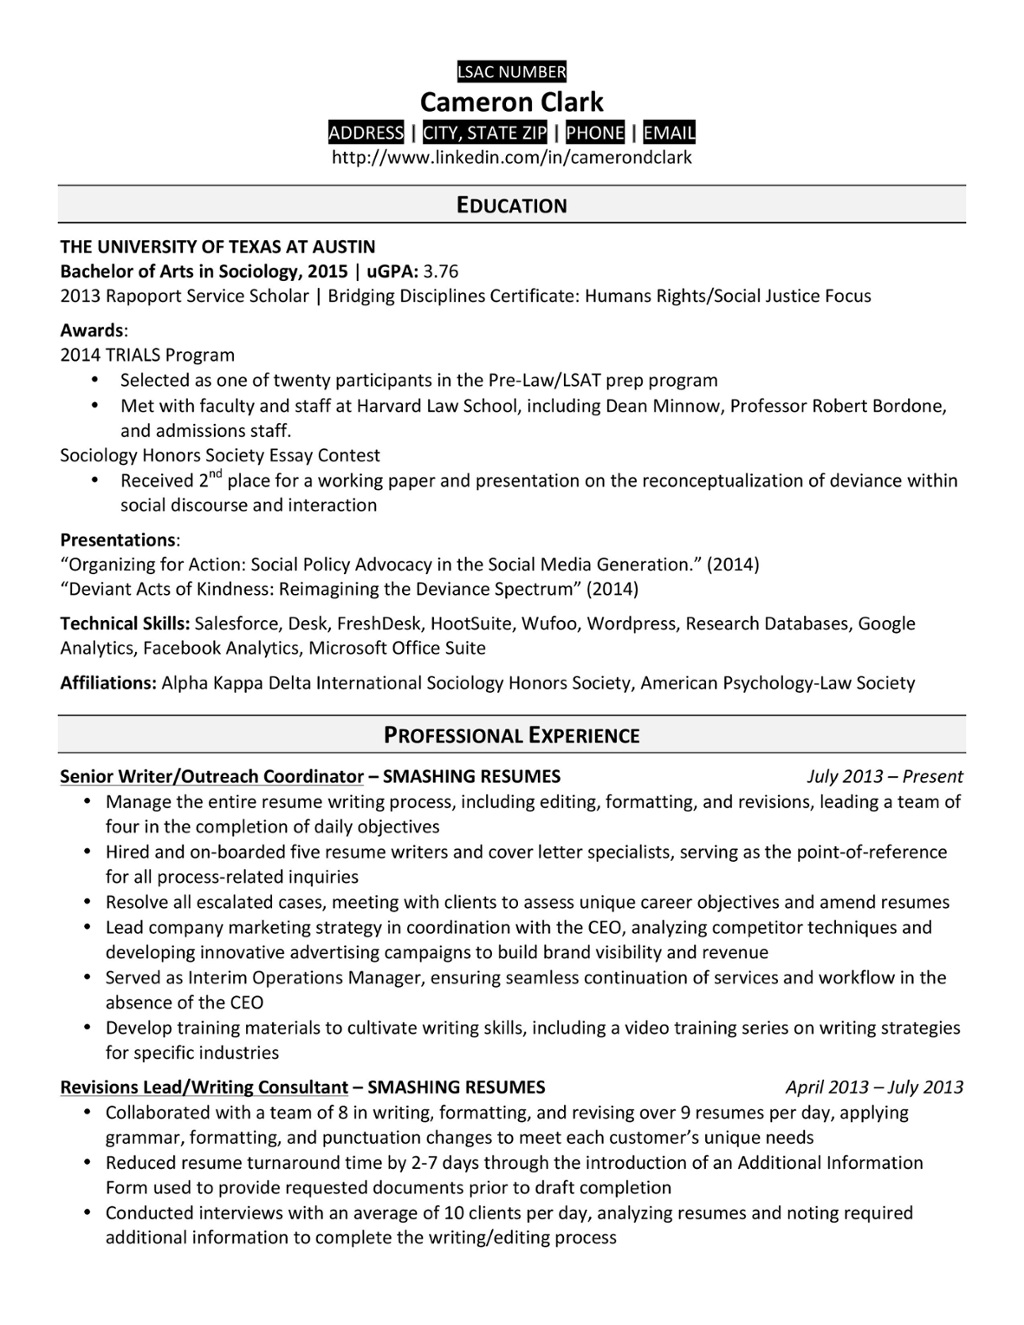 A Law School Resume That Made the Cut Top Law Schools US News